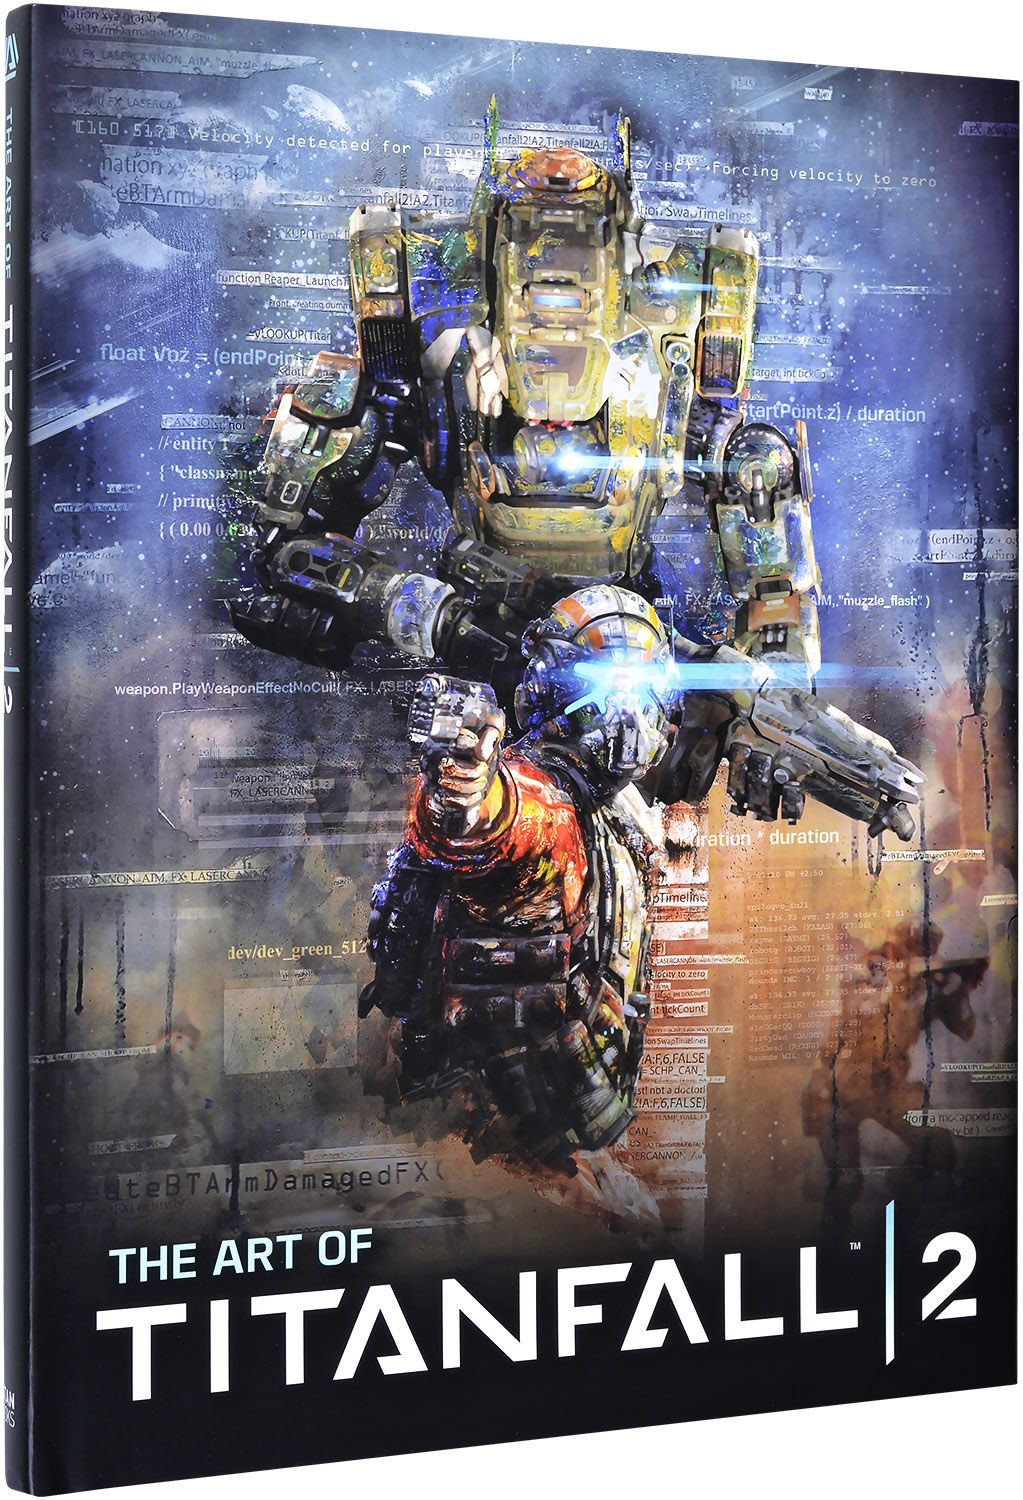 The Art of Titanfall 2 - 2